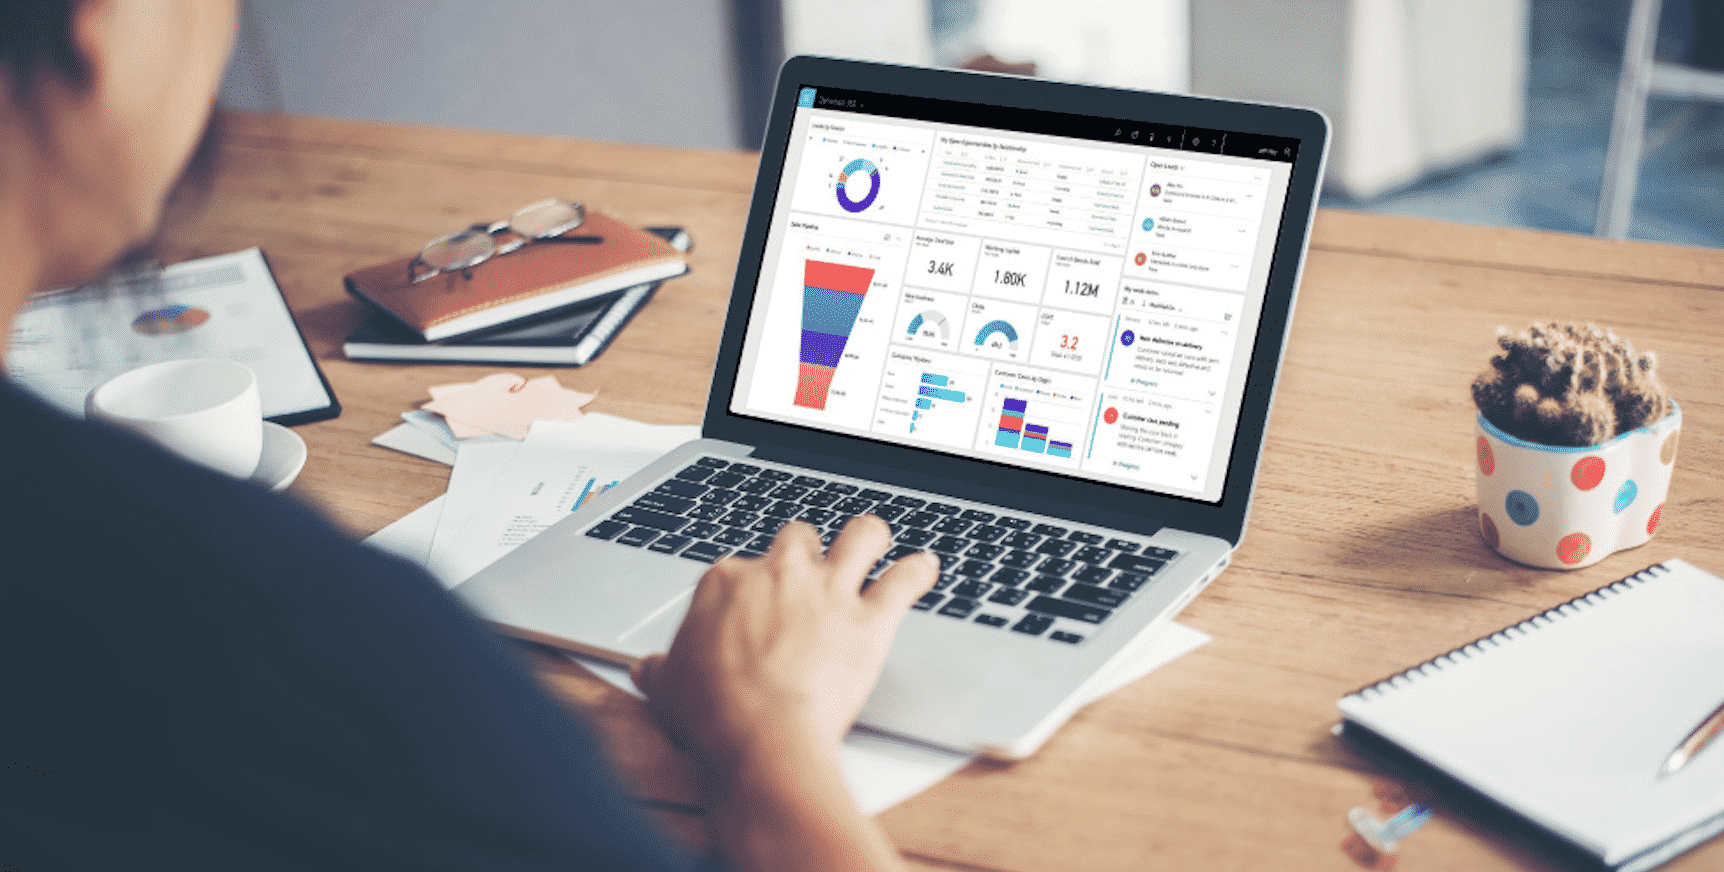 5 Reasons to Choose Microsoft Dynamics 365 for Your Business